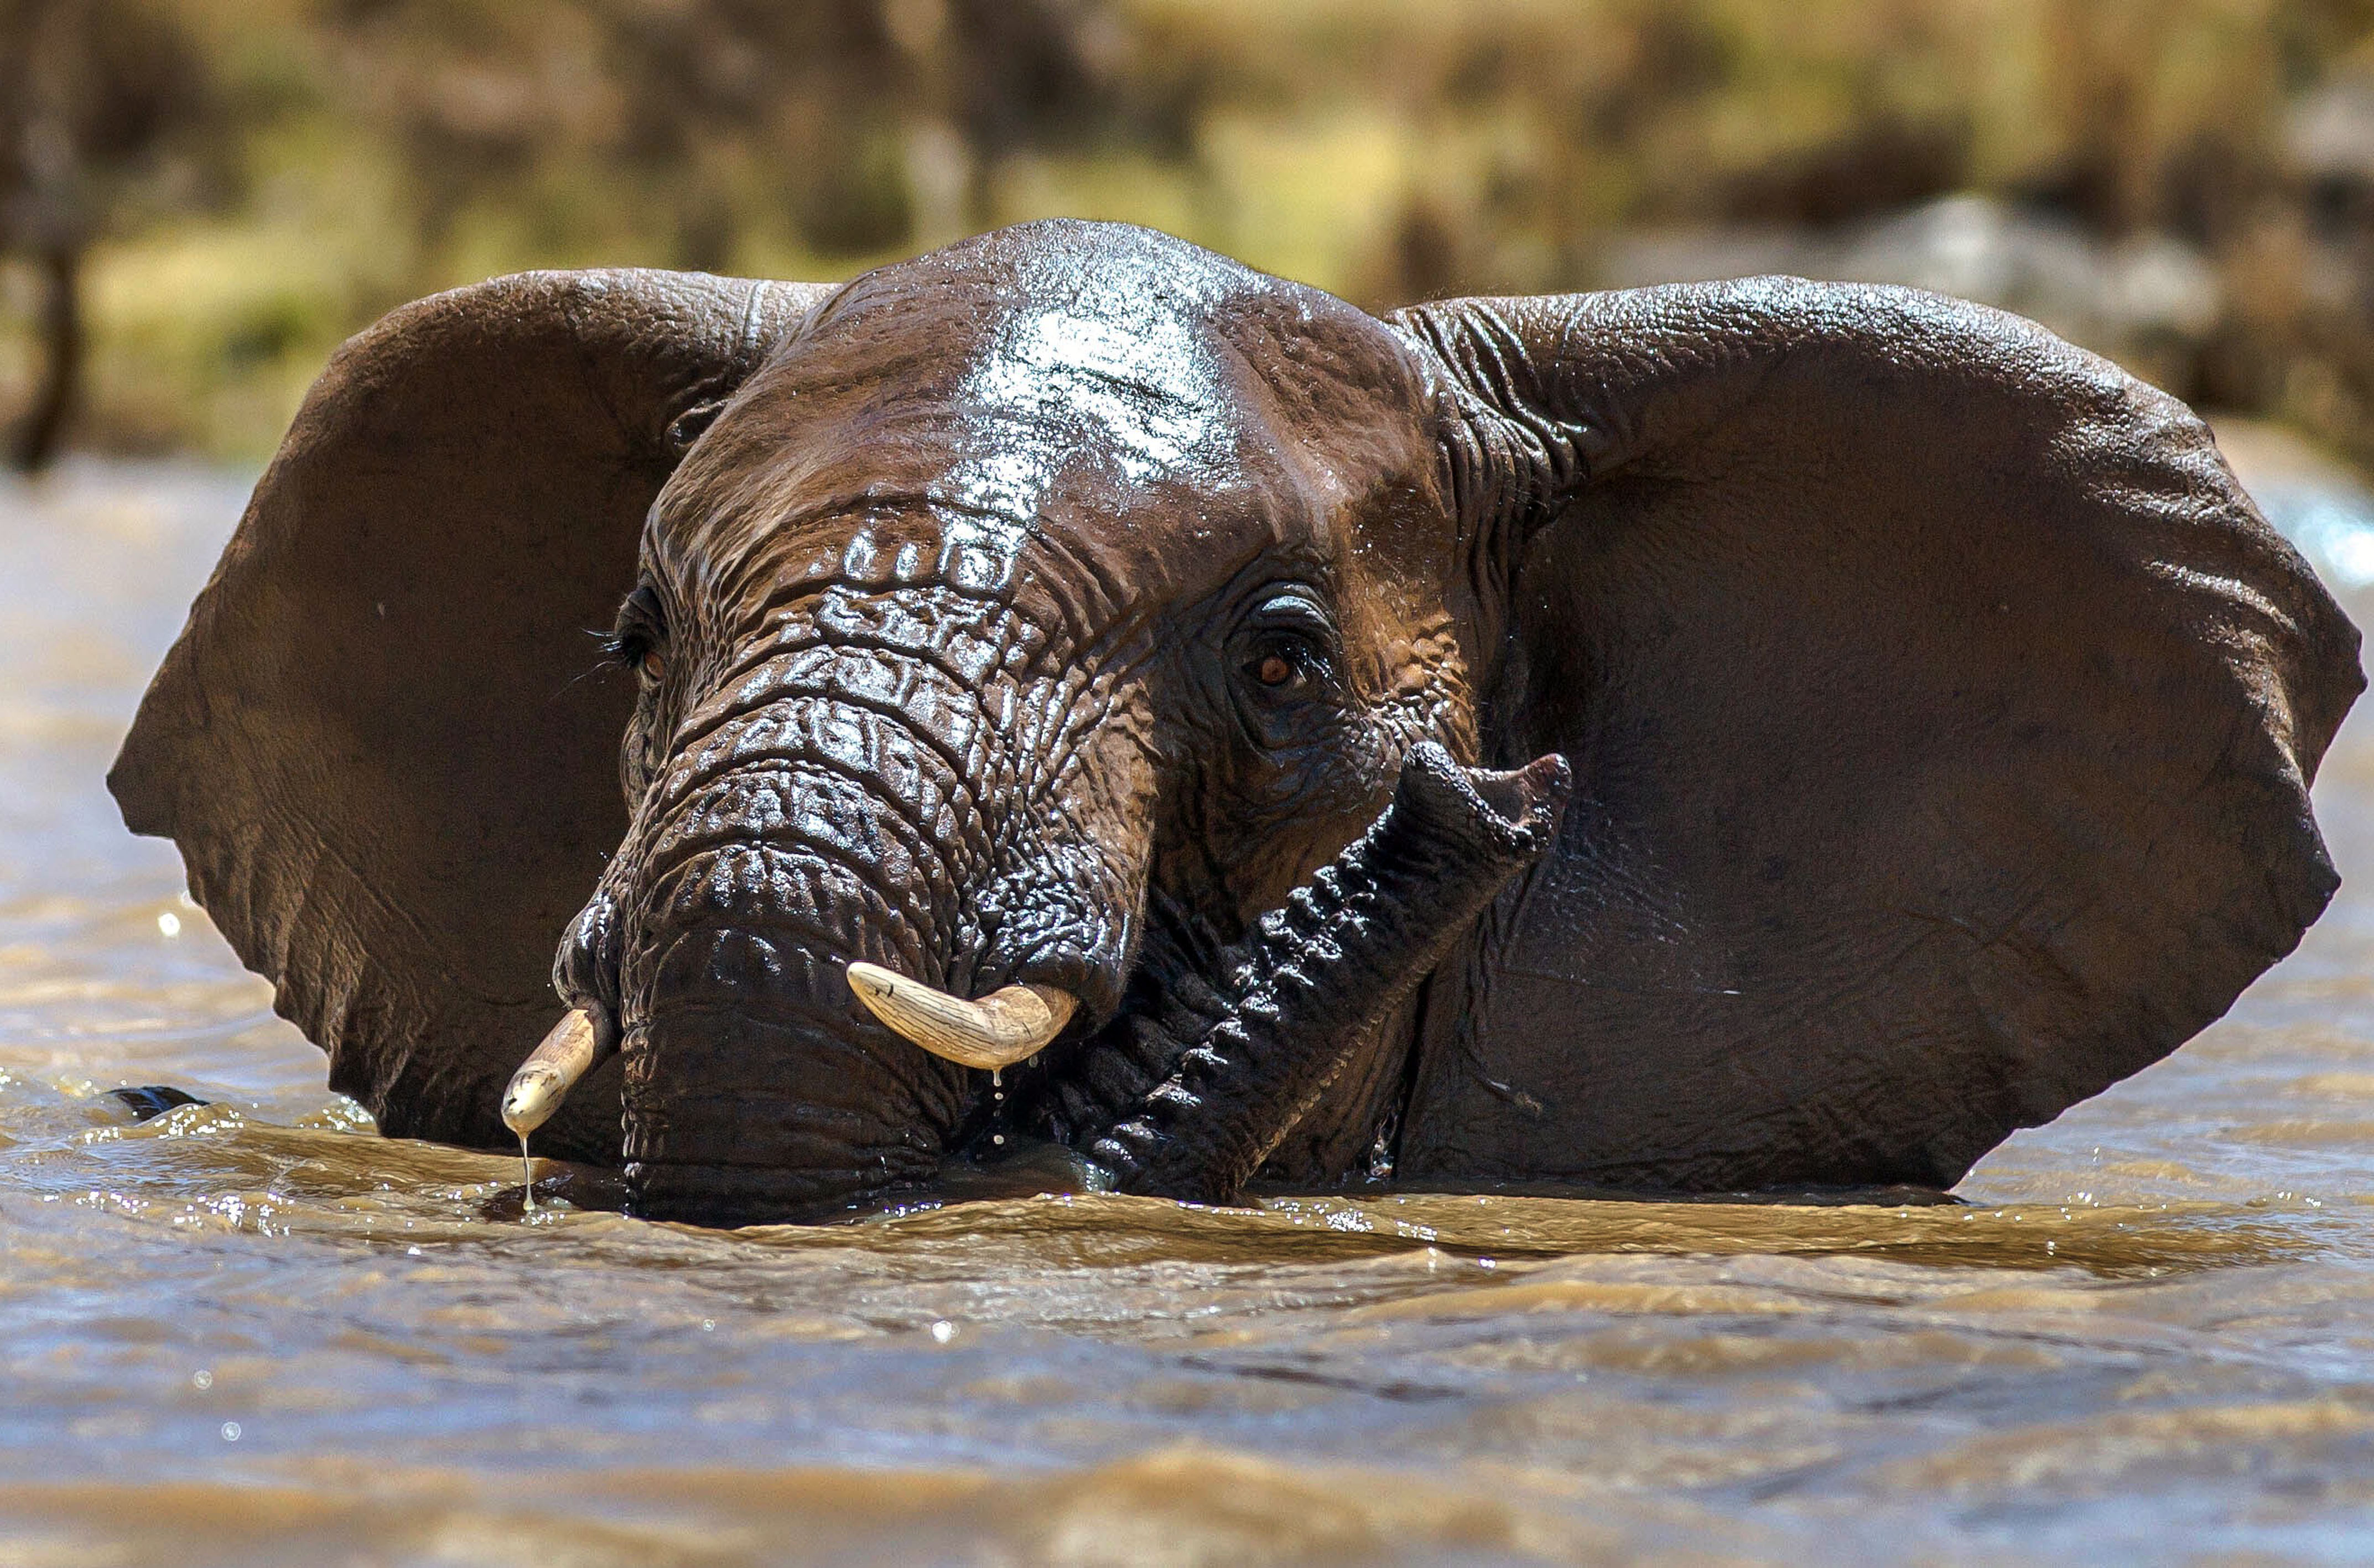 ***MANDATORY BYLINE PIC BY JOSH PERRETT OF EKORIAN.COM/CATERS NEWS - (PICTURED: A stunning image of an elephant swimming in the river at Ekorians Mugie Camp in Kenya. The camp was founded by Donna and Josh Perrett in 2012.) - Tourists had a welcome surprise when they were greeted by ELEPHANTS while kayaking. The holidaymakers were promised a magical experience at a private eco camp in Northern Laikipia, Kenya - and the company certainly delivered! The kayakers were able to get up close and personal with the giant mammals as they played in the water. At one point, three elephants crowded round a very excited couple, while a baby elephant clung onto its back. SEE CATERS COPY.